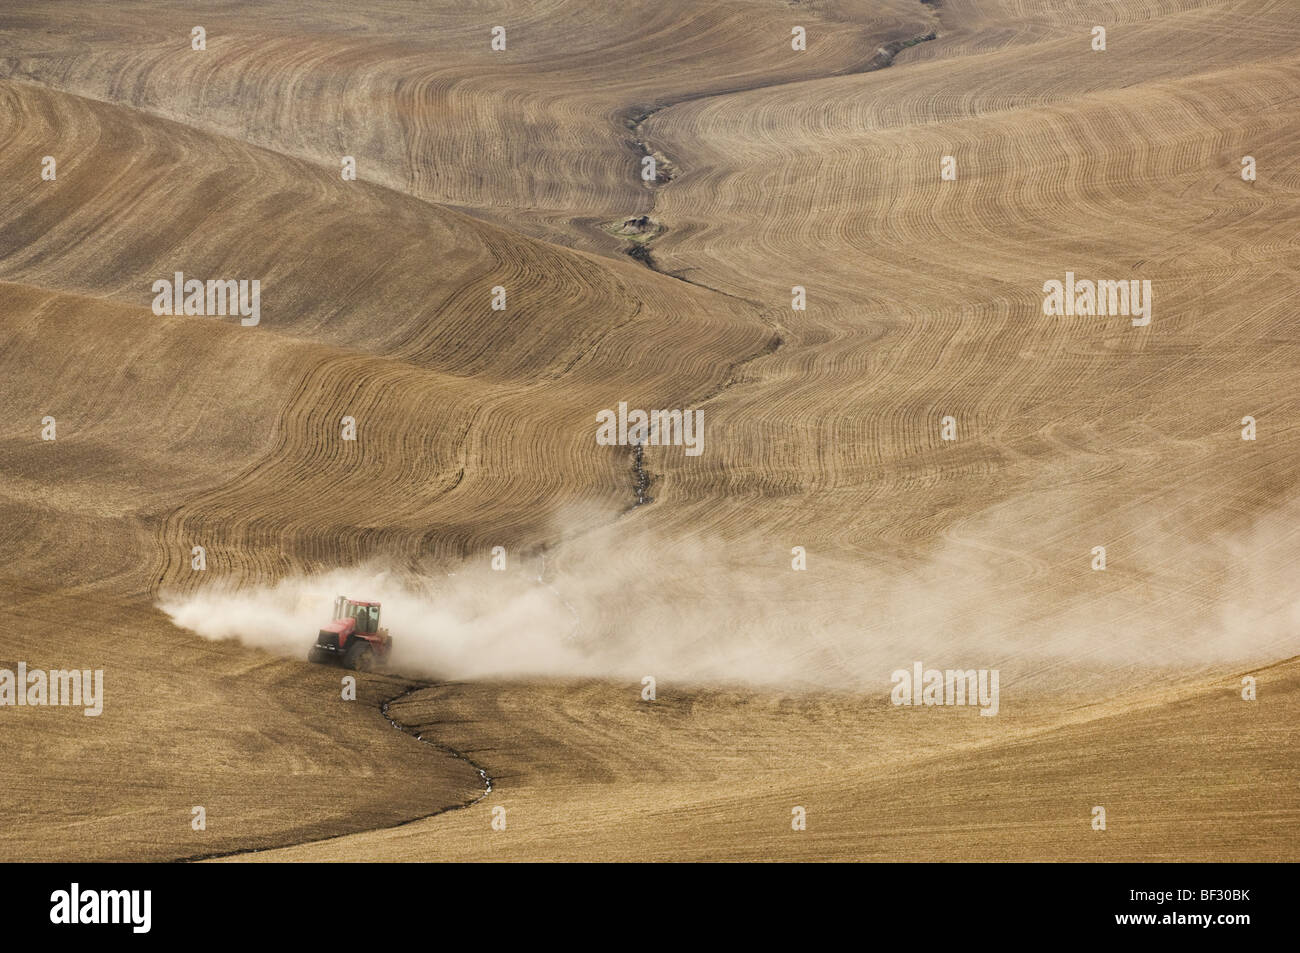 A John Deere tractor and air seeder planting garbanzo beans (chick peas) in the rolling hills of the Palouse / Washington, - Stock Image